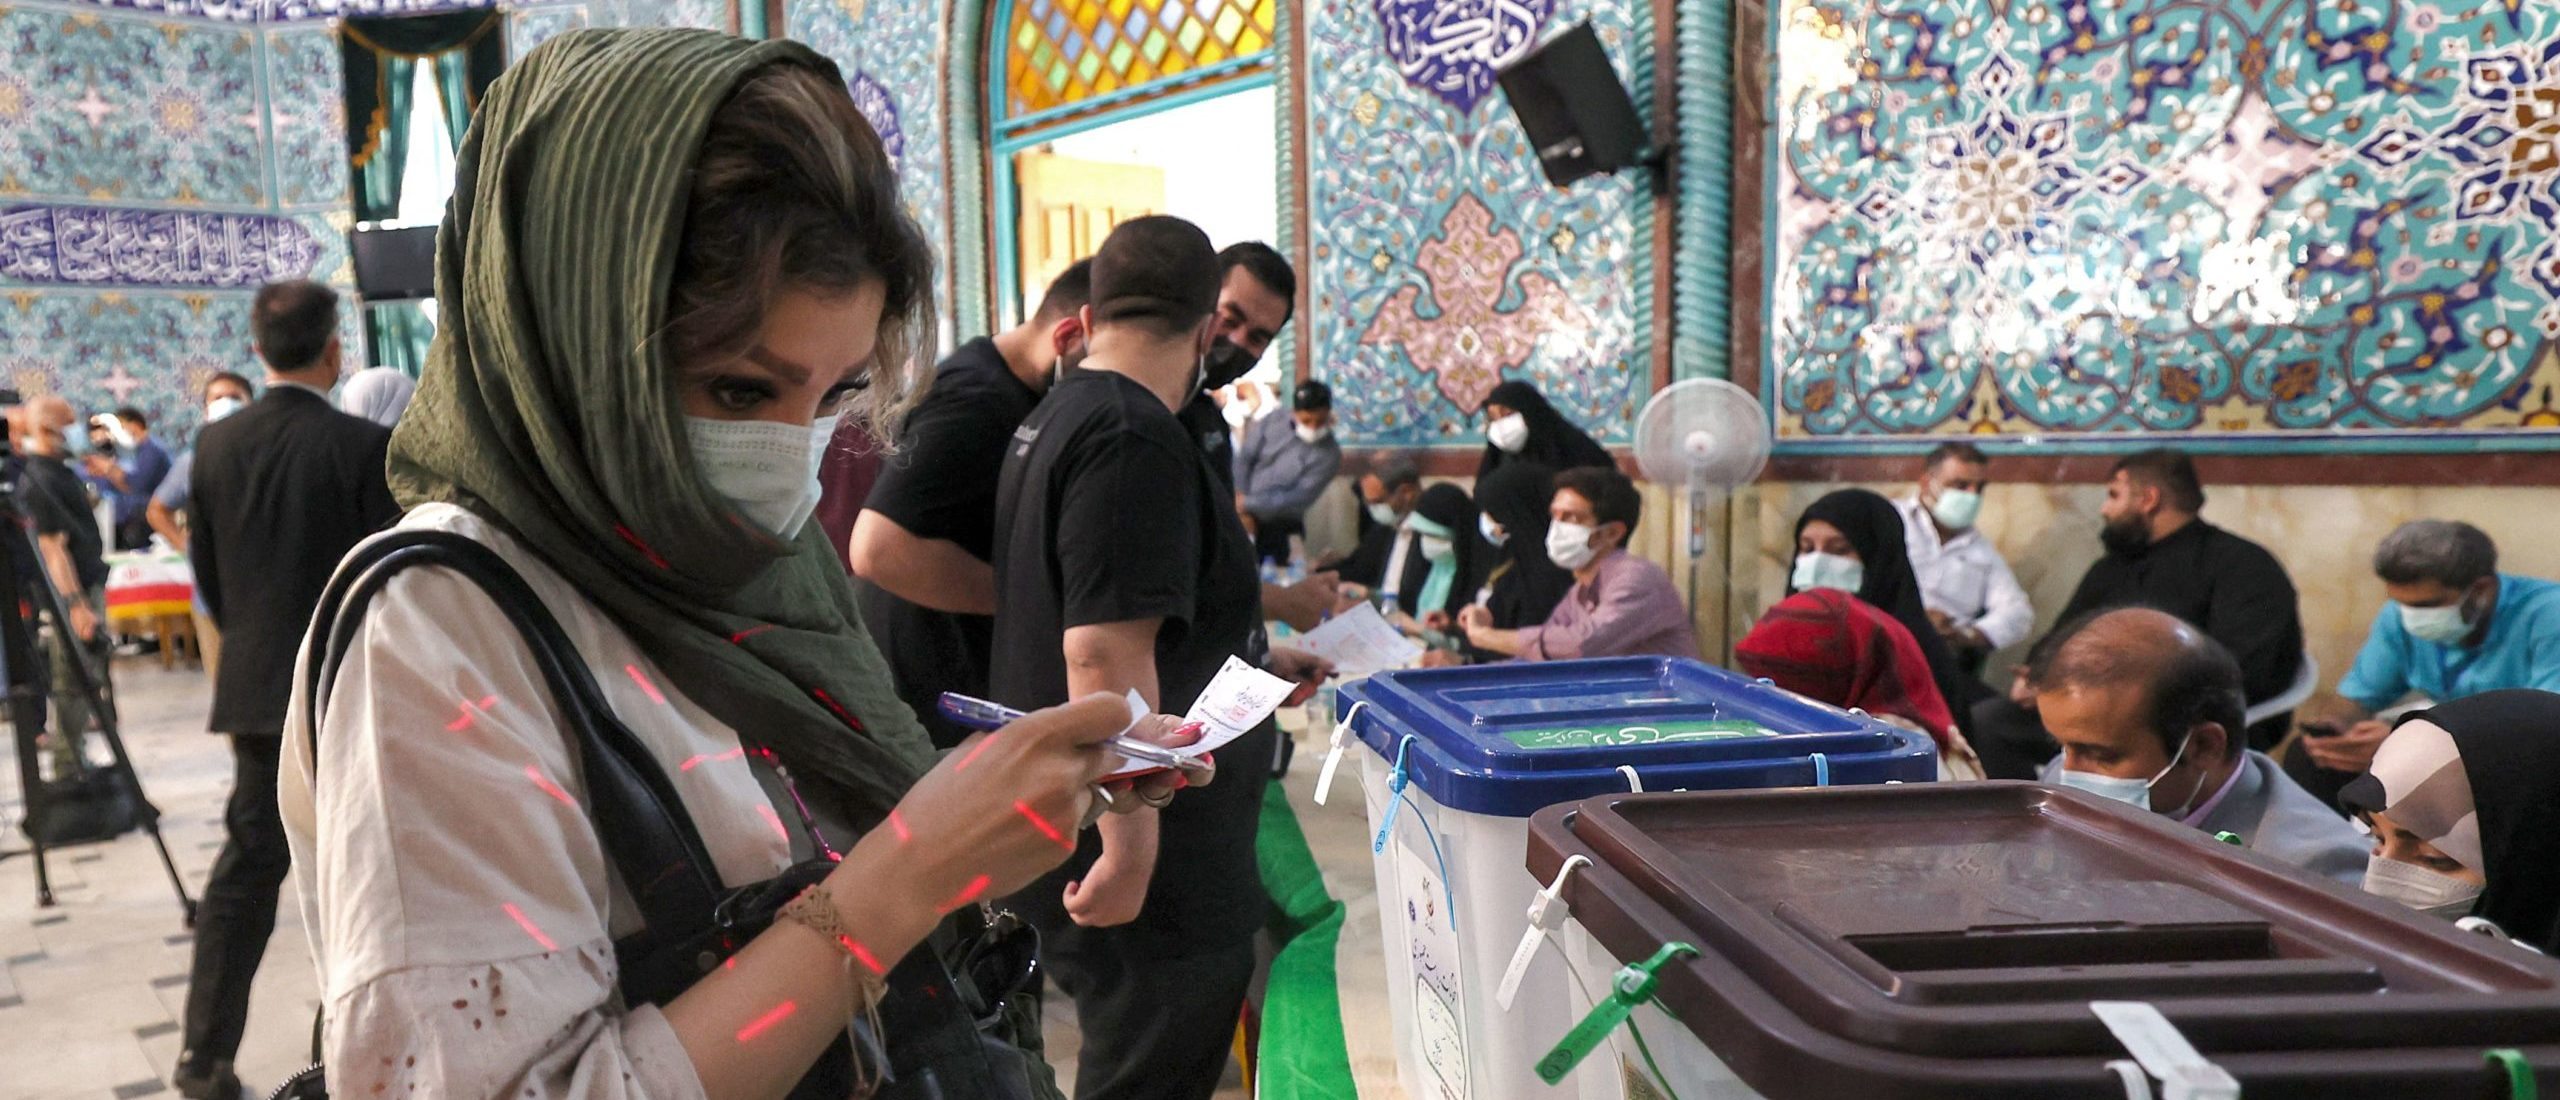 A woman examines a ballot before casting it at a polling station in Iran's capital Tehran on June 18, 2021, during the 2021 presidential election. - Iranians voted on June 18 in a presidential election in which ultraconservative cleric Ebrahim Raisi is seen as all but certain to coast to victory after all serious rivals were barred from running. (Photo by ATTA KENARE/AFP via Getty Images)